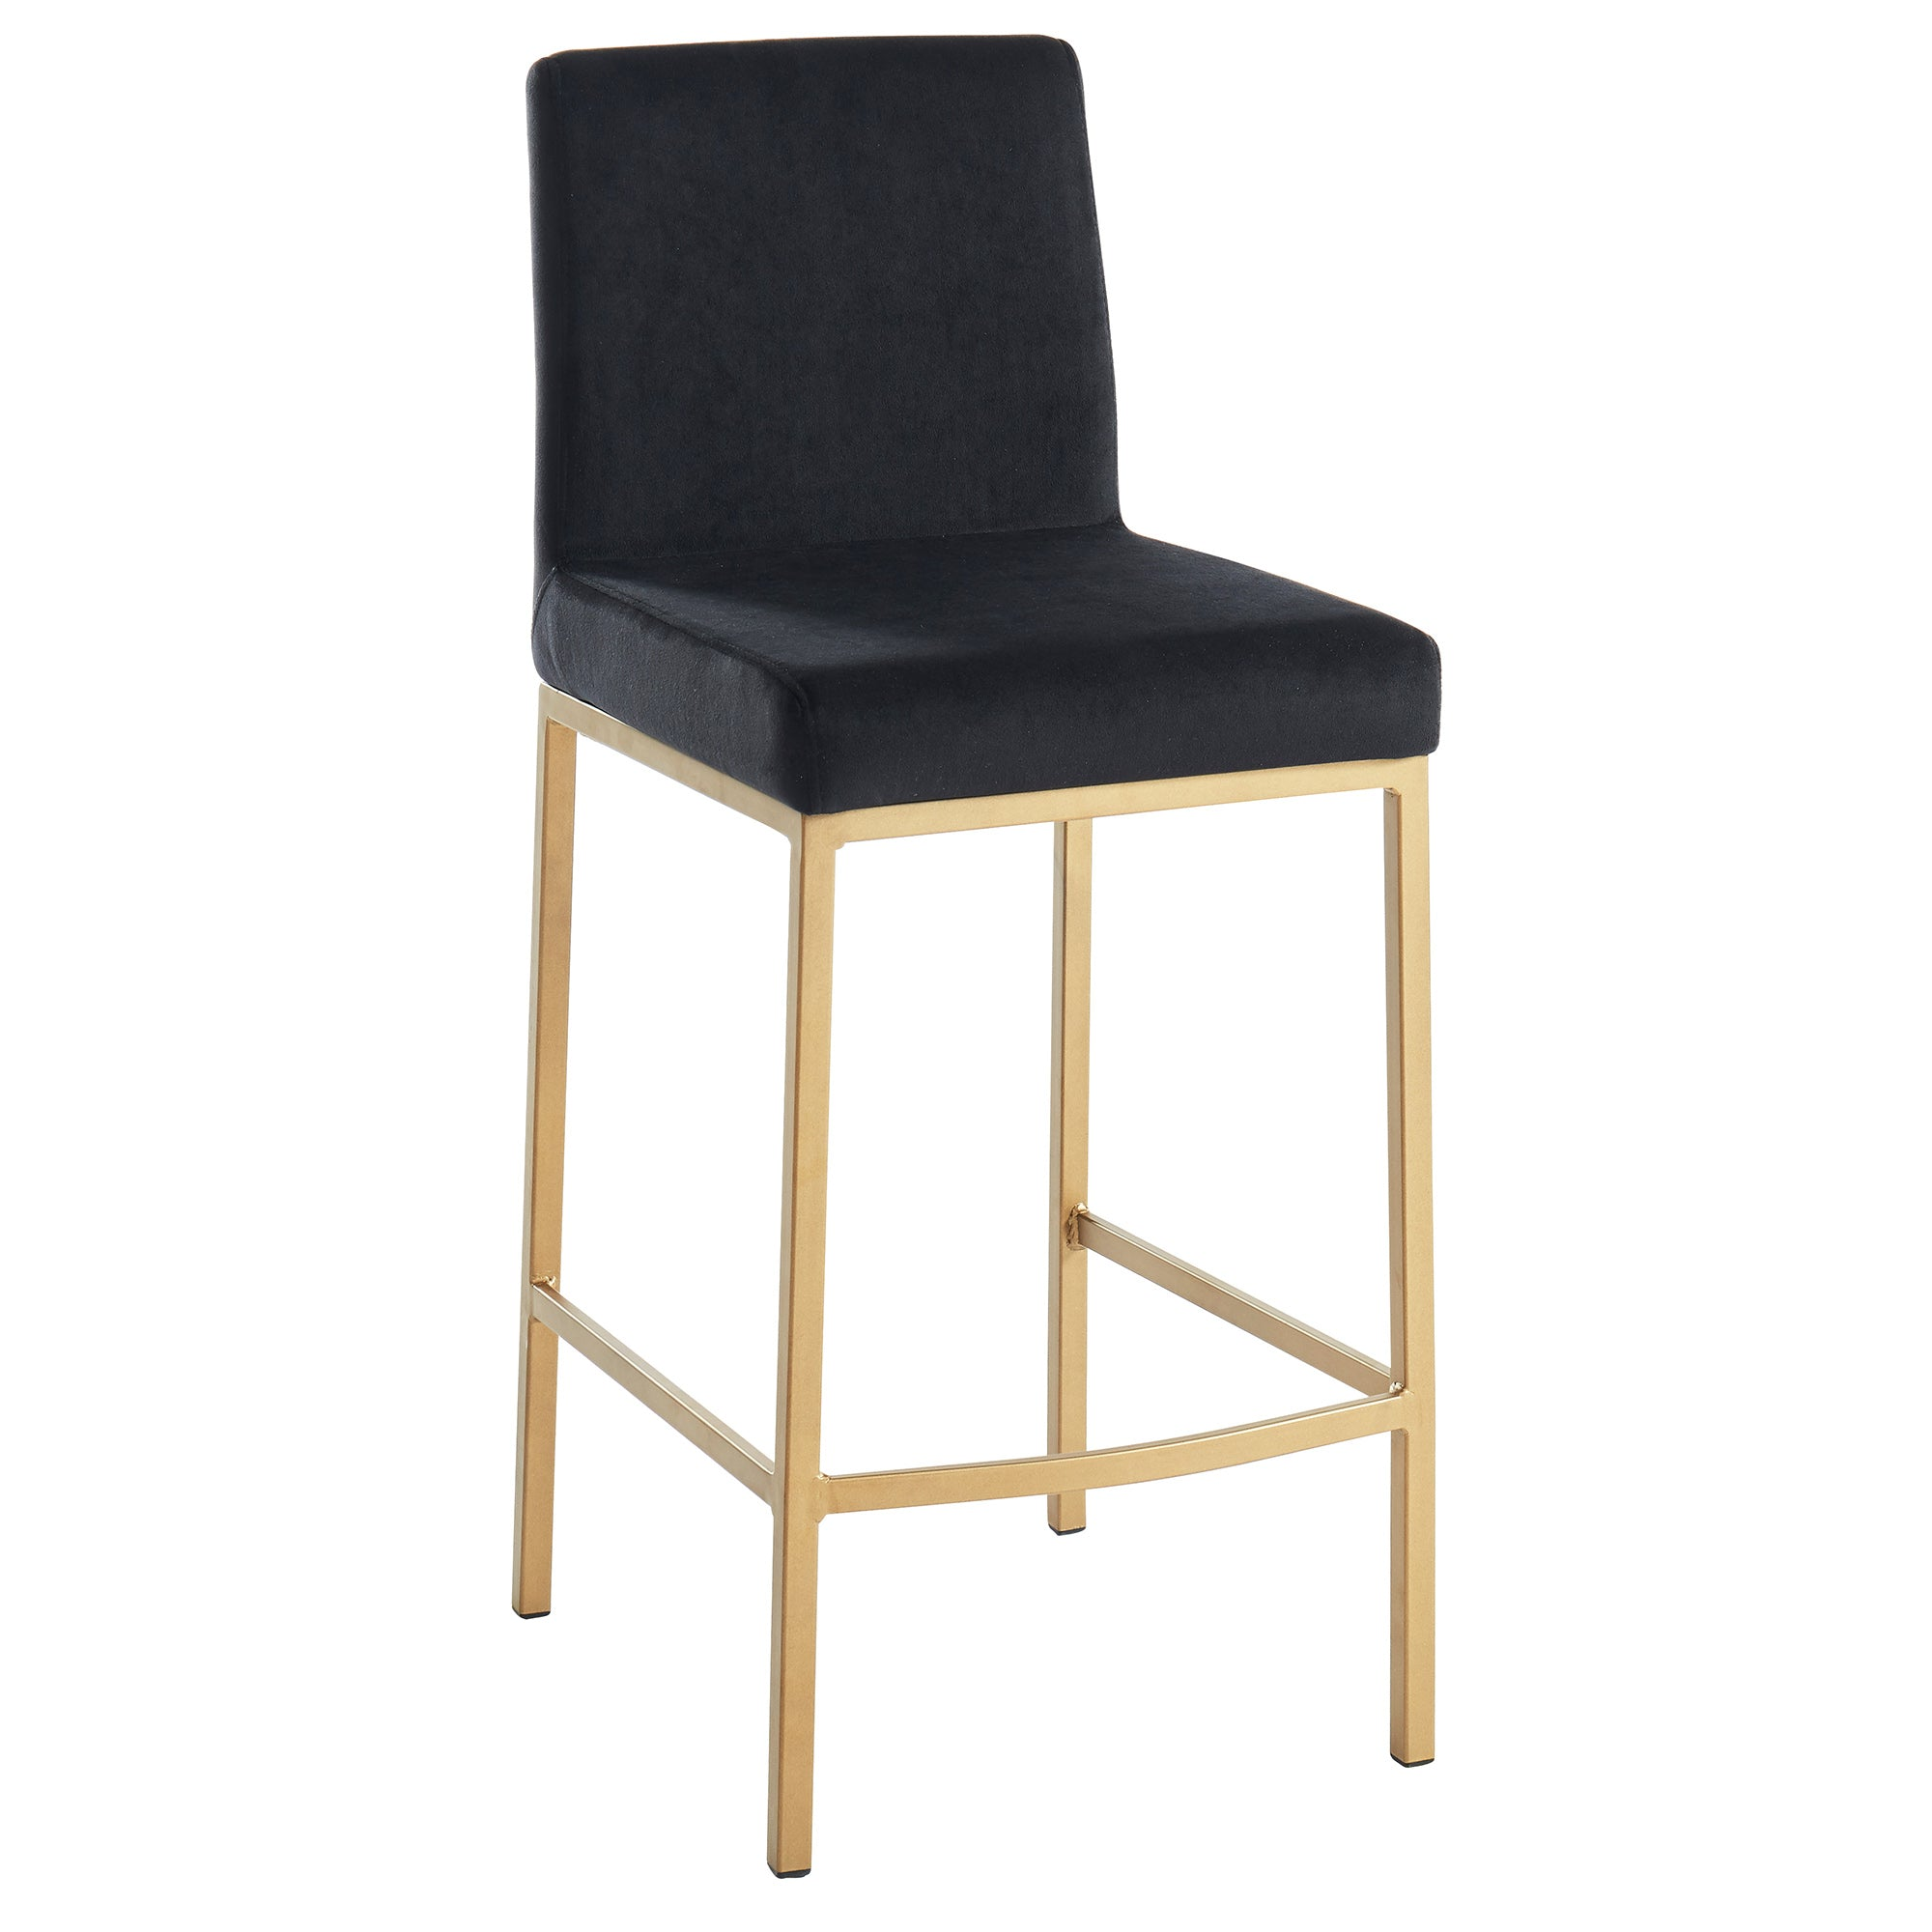 Diego Counter Stool - Black/Gold Legs